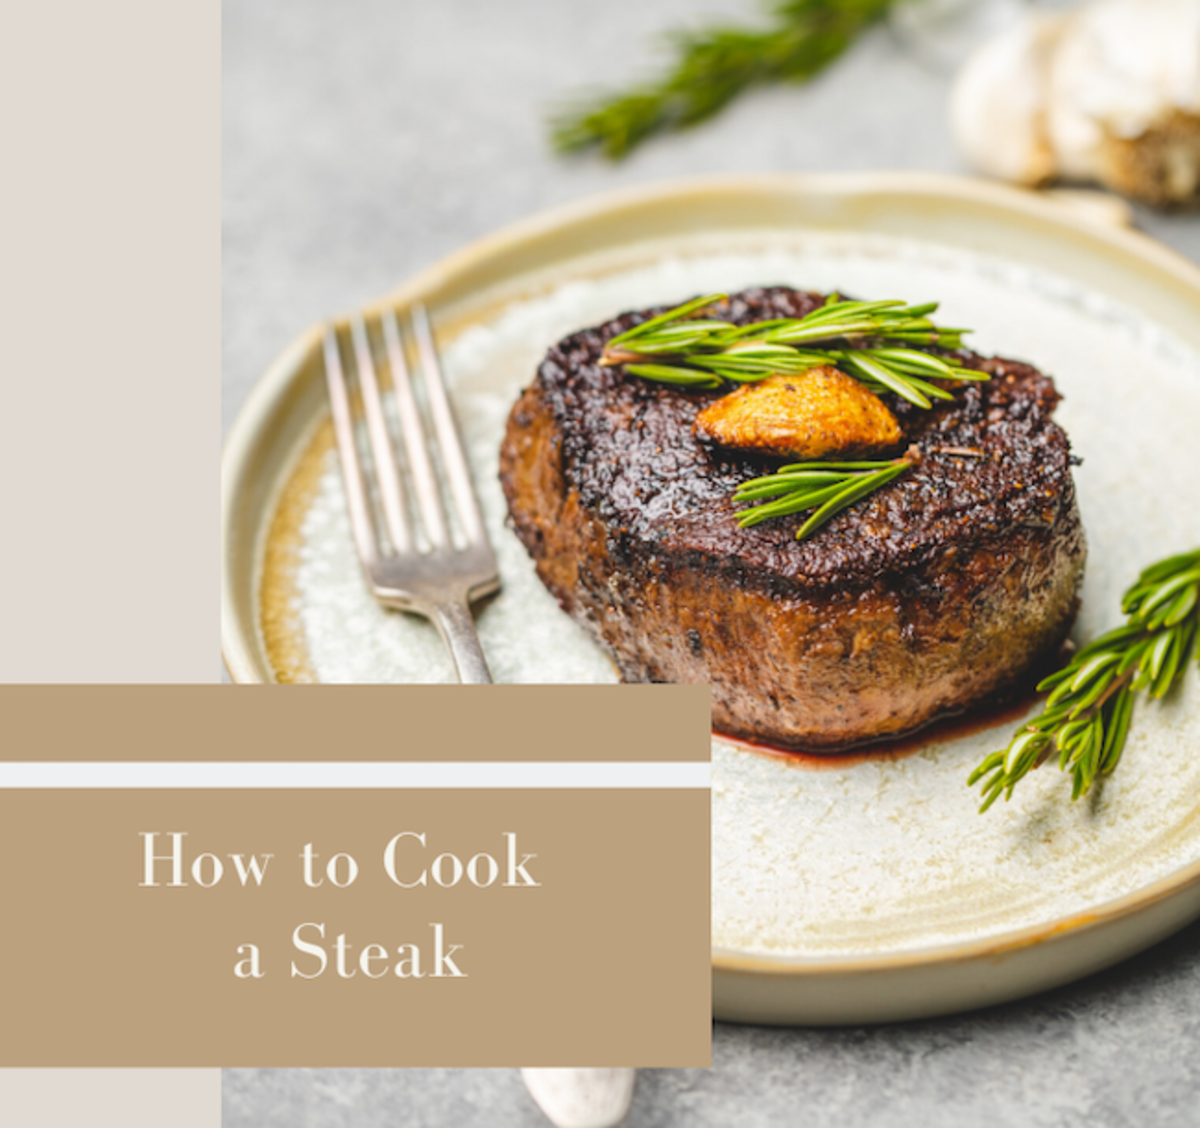 I guarantee that these methods will result in the best tasting steak.